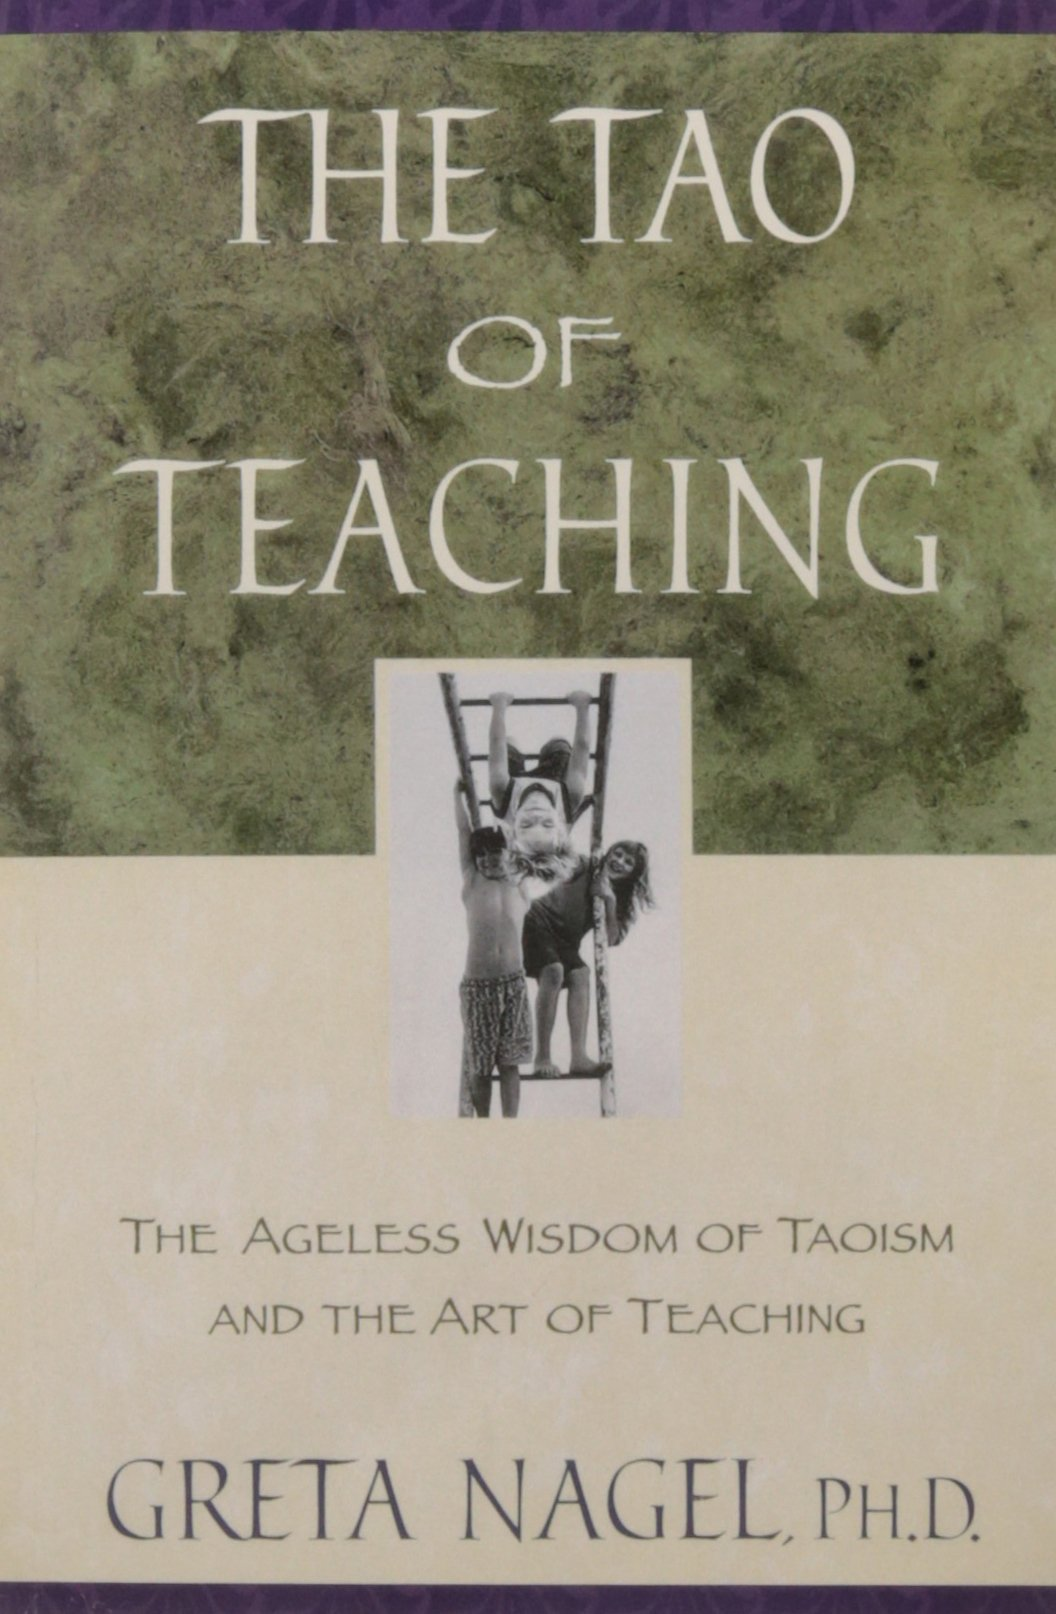 The Tao of Teaching: The Ageless Wisdom of Taoism and the Art of Teaching